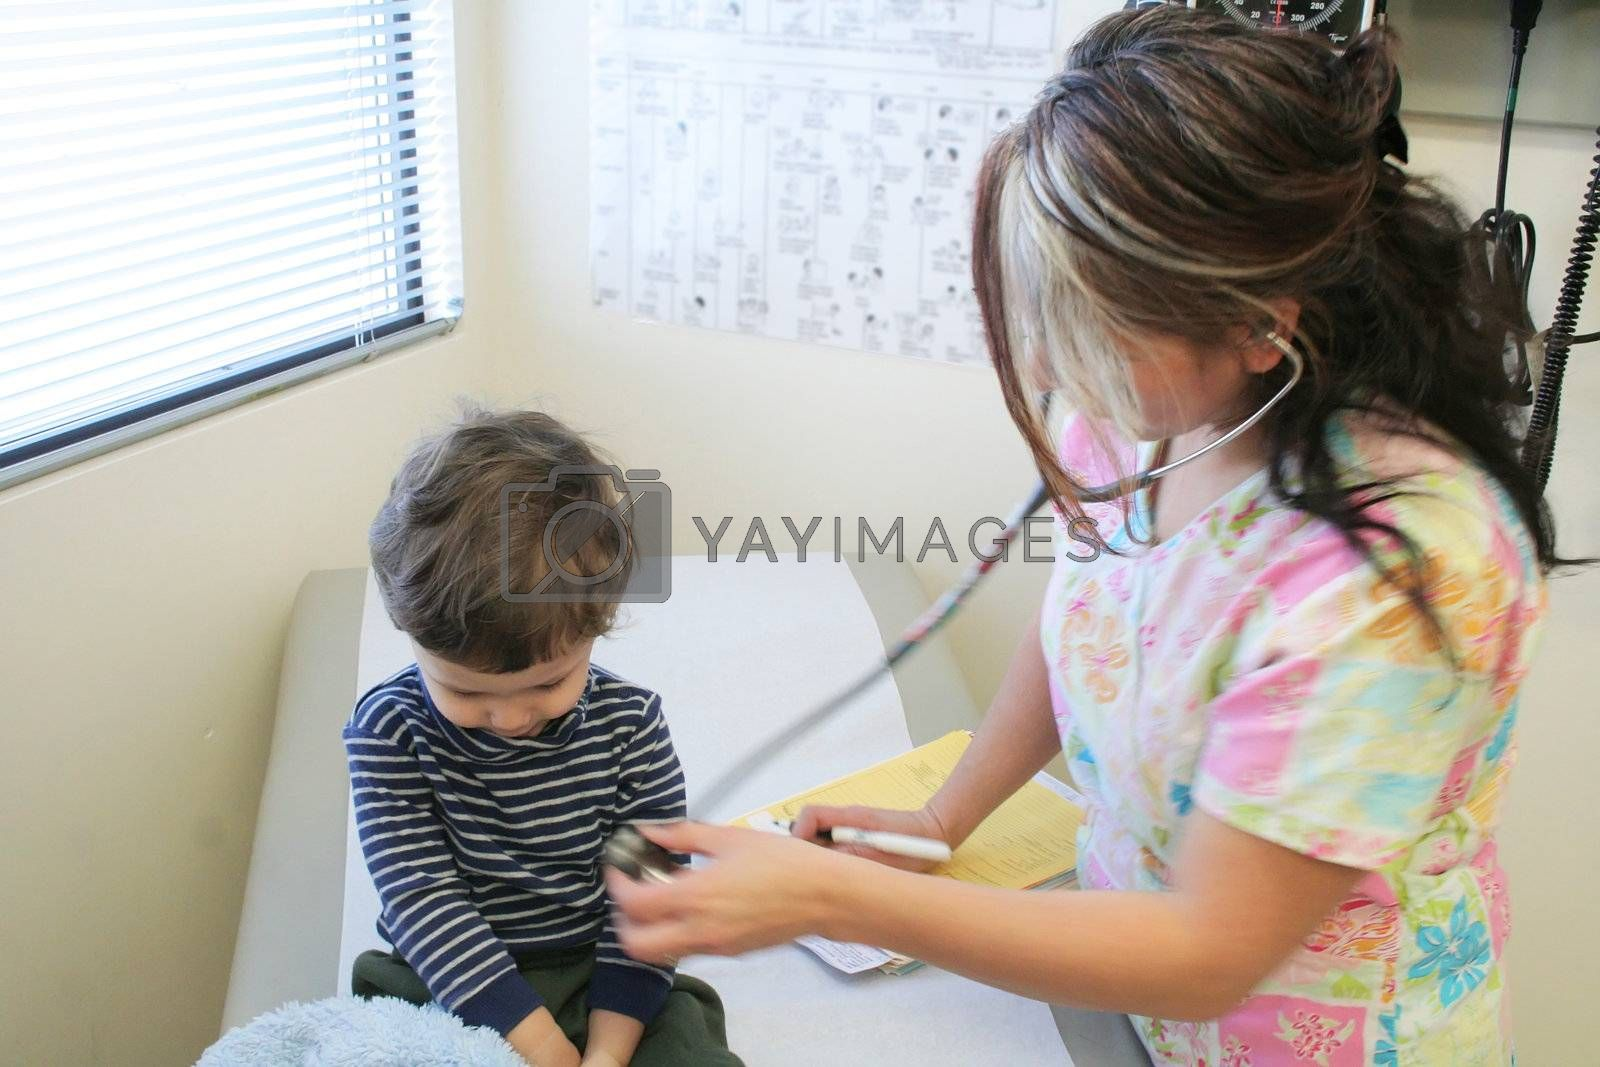 Young child getting a checkup from a nurse